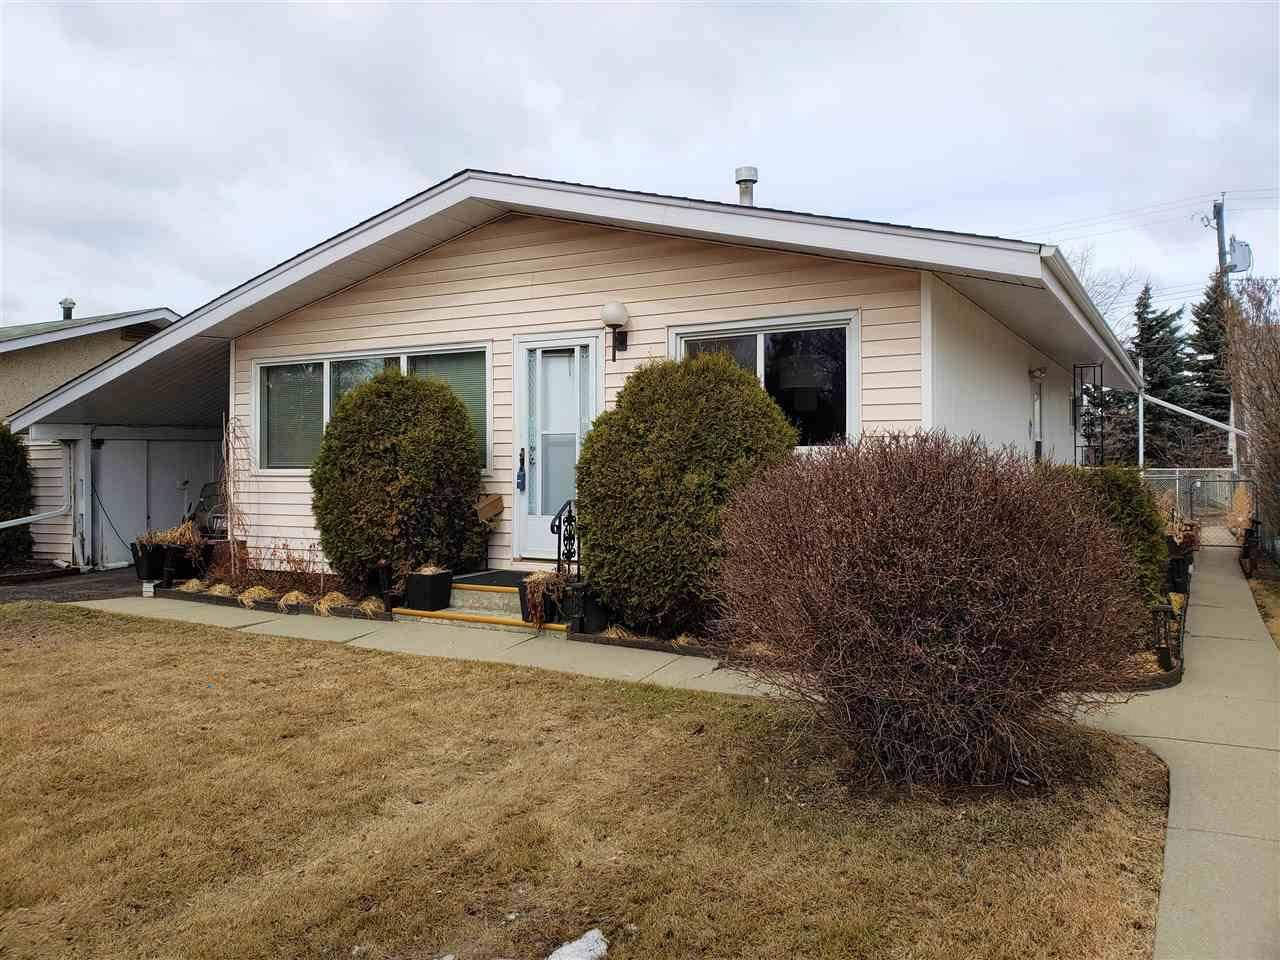 House for sale at 15622 108 Ave Nw Edmonton Alberta - MLS: E4186098